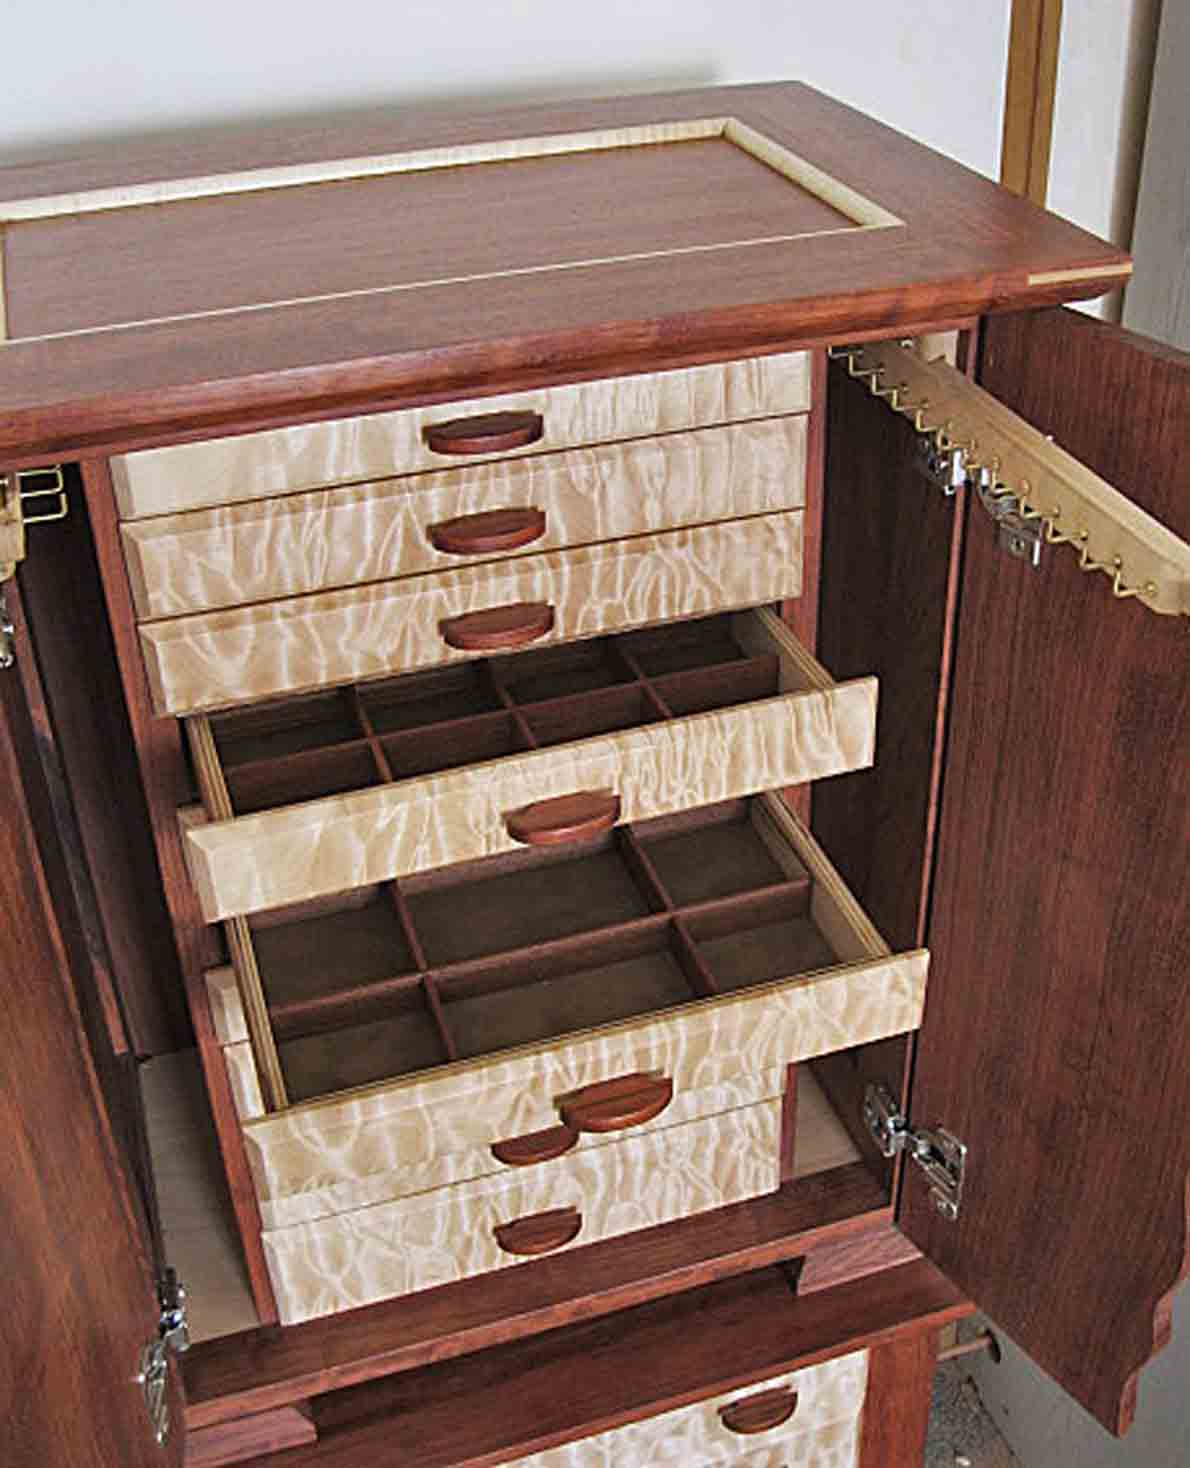 Handmade wooden large jewelry box shown with jewelry storage drawers open